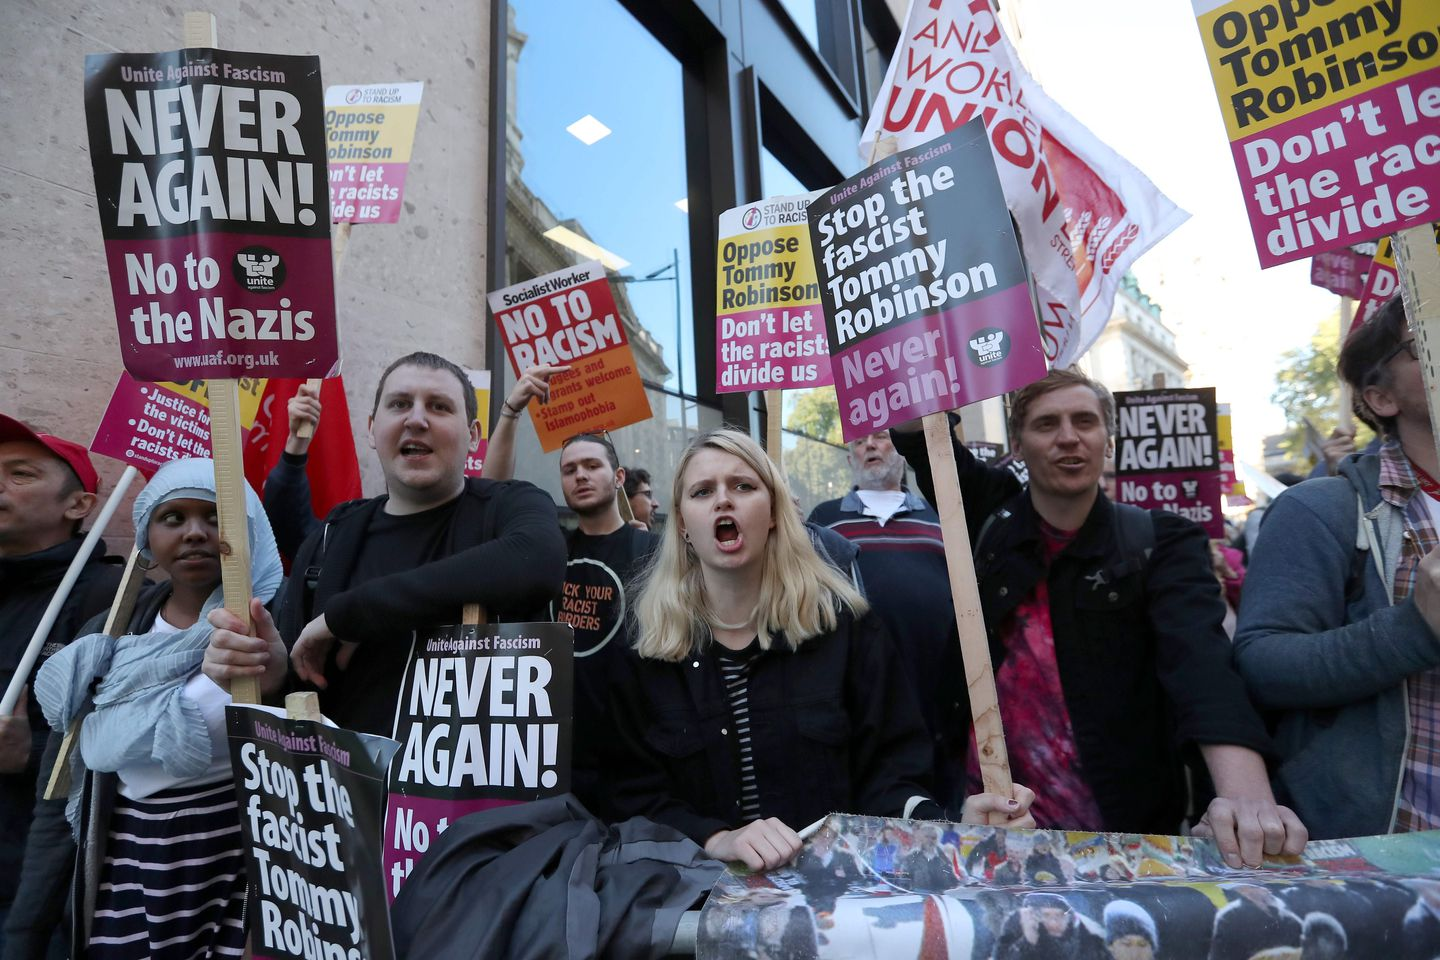 Demonstrators protested against Tommy Robinson outside court in September.